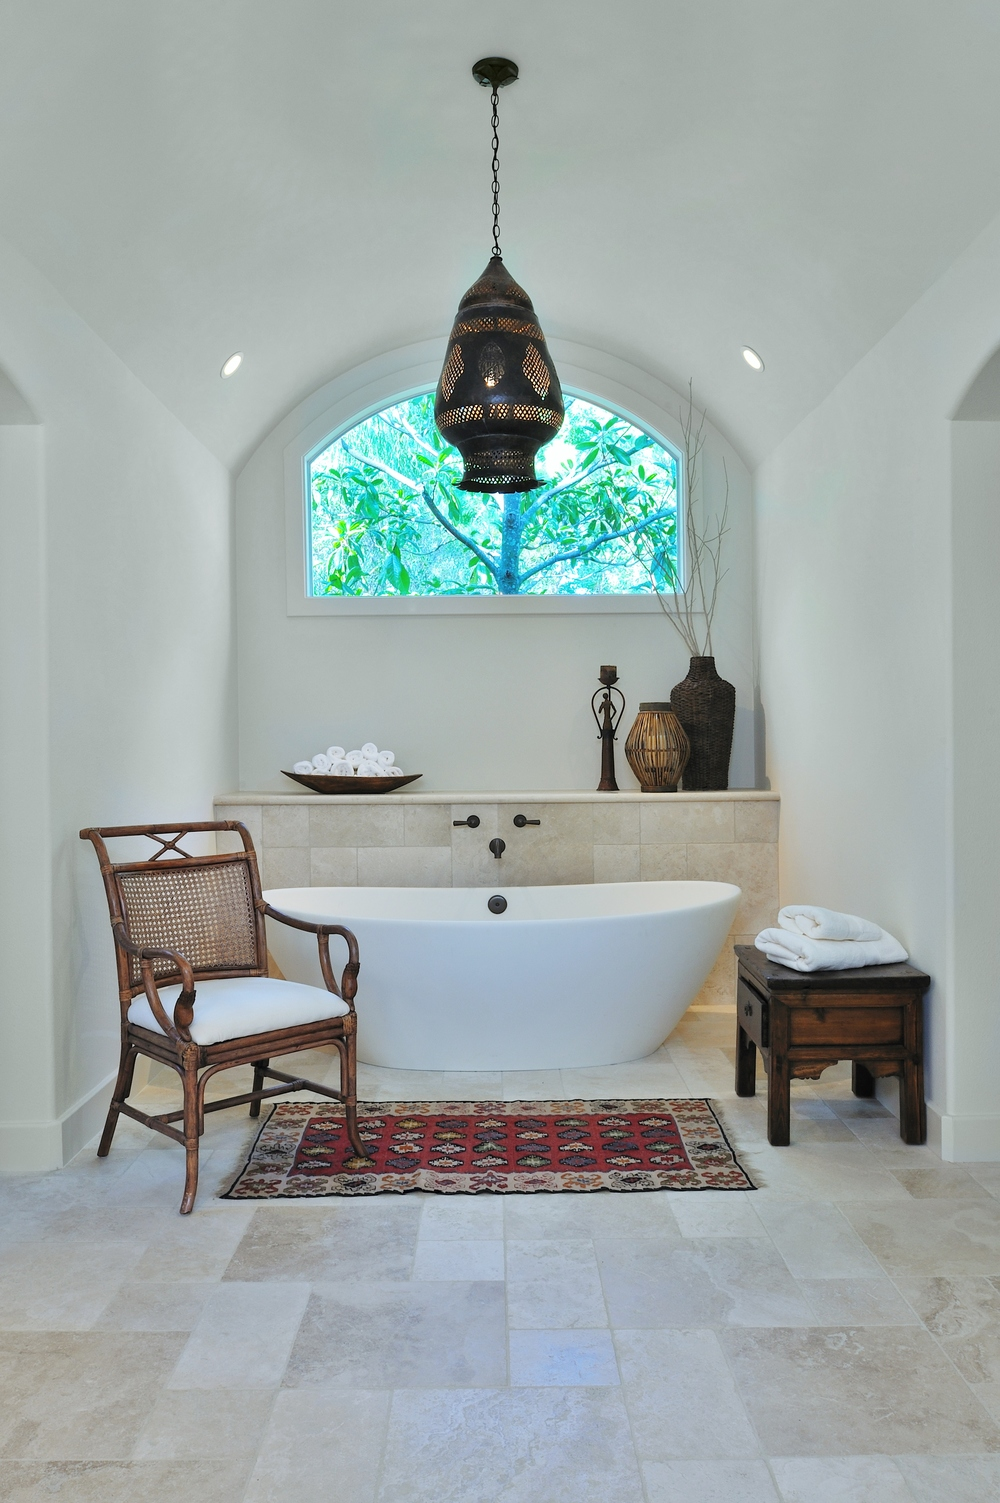 Bathroom design trends |Bathroom remodel before and after with Moroccan chandelier, tile wall and ledge, barrel ceiling, free standing tub | Designer: Carla Aston, Photographer: Miro Dvorscak #bathroomideas #bathroom #tub #bathroomremodel